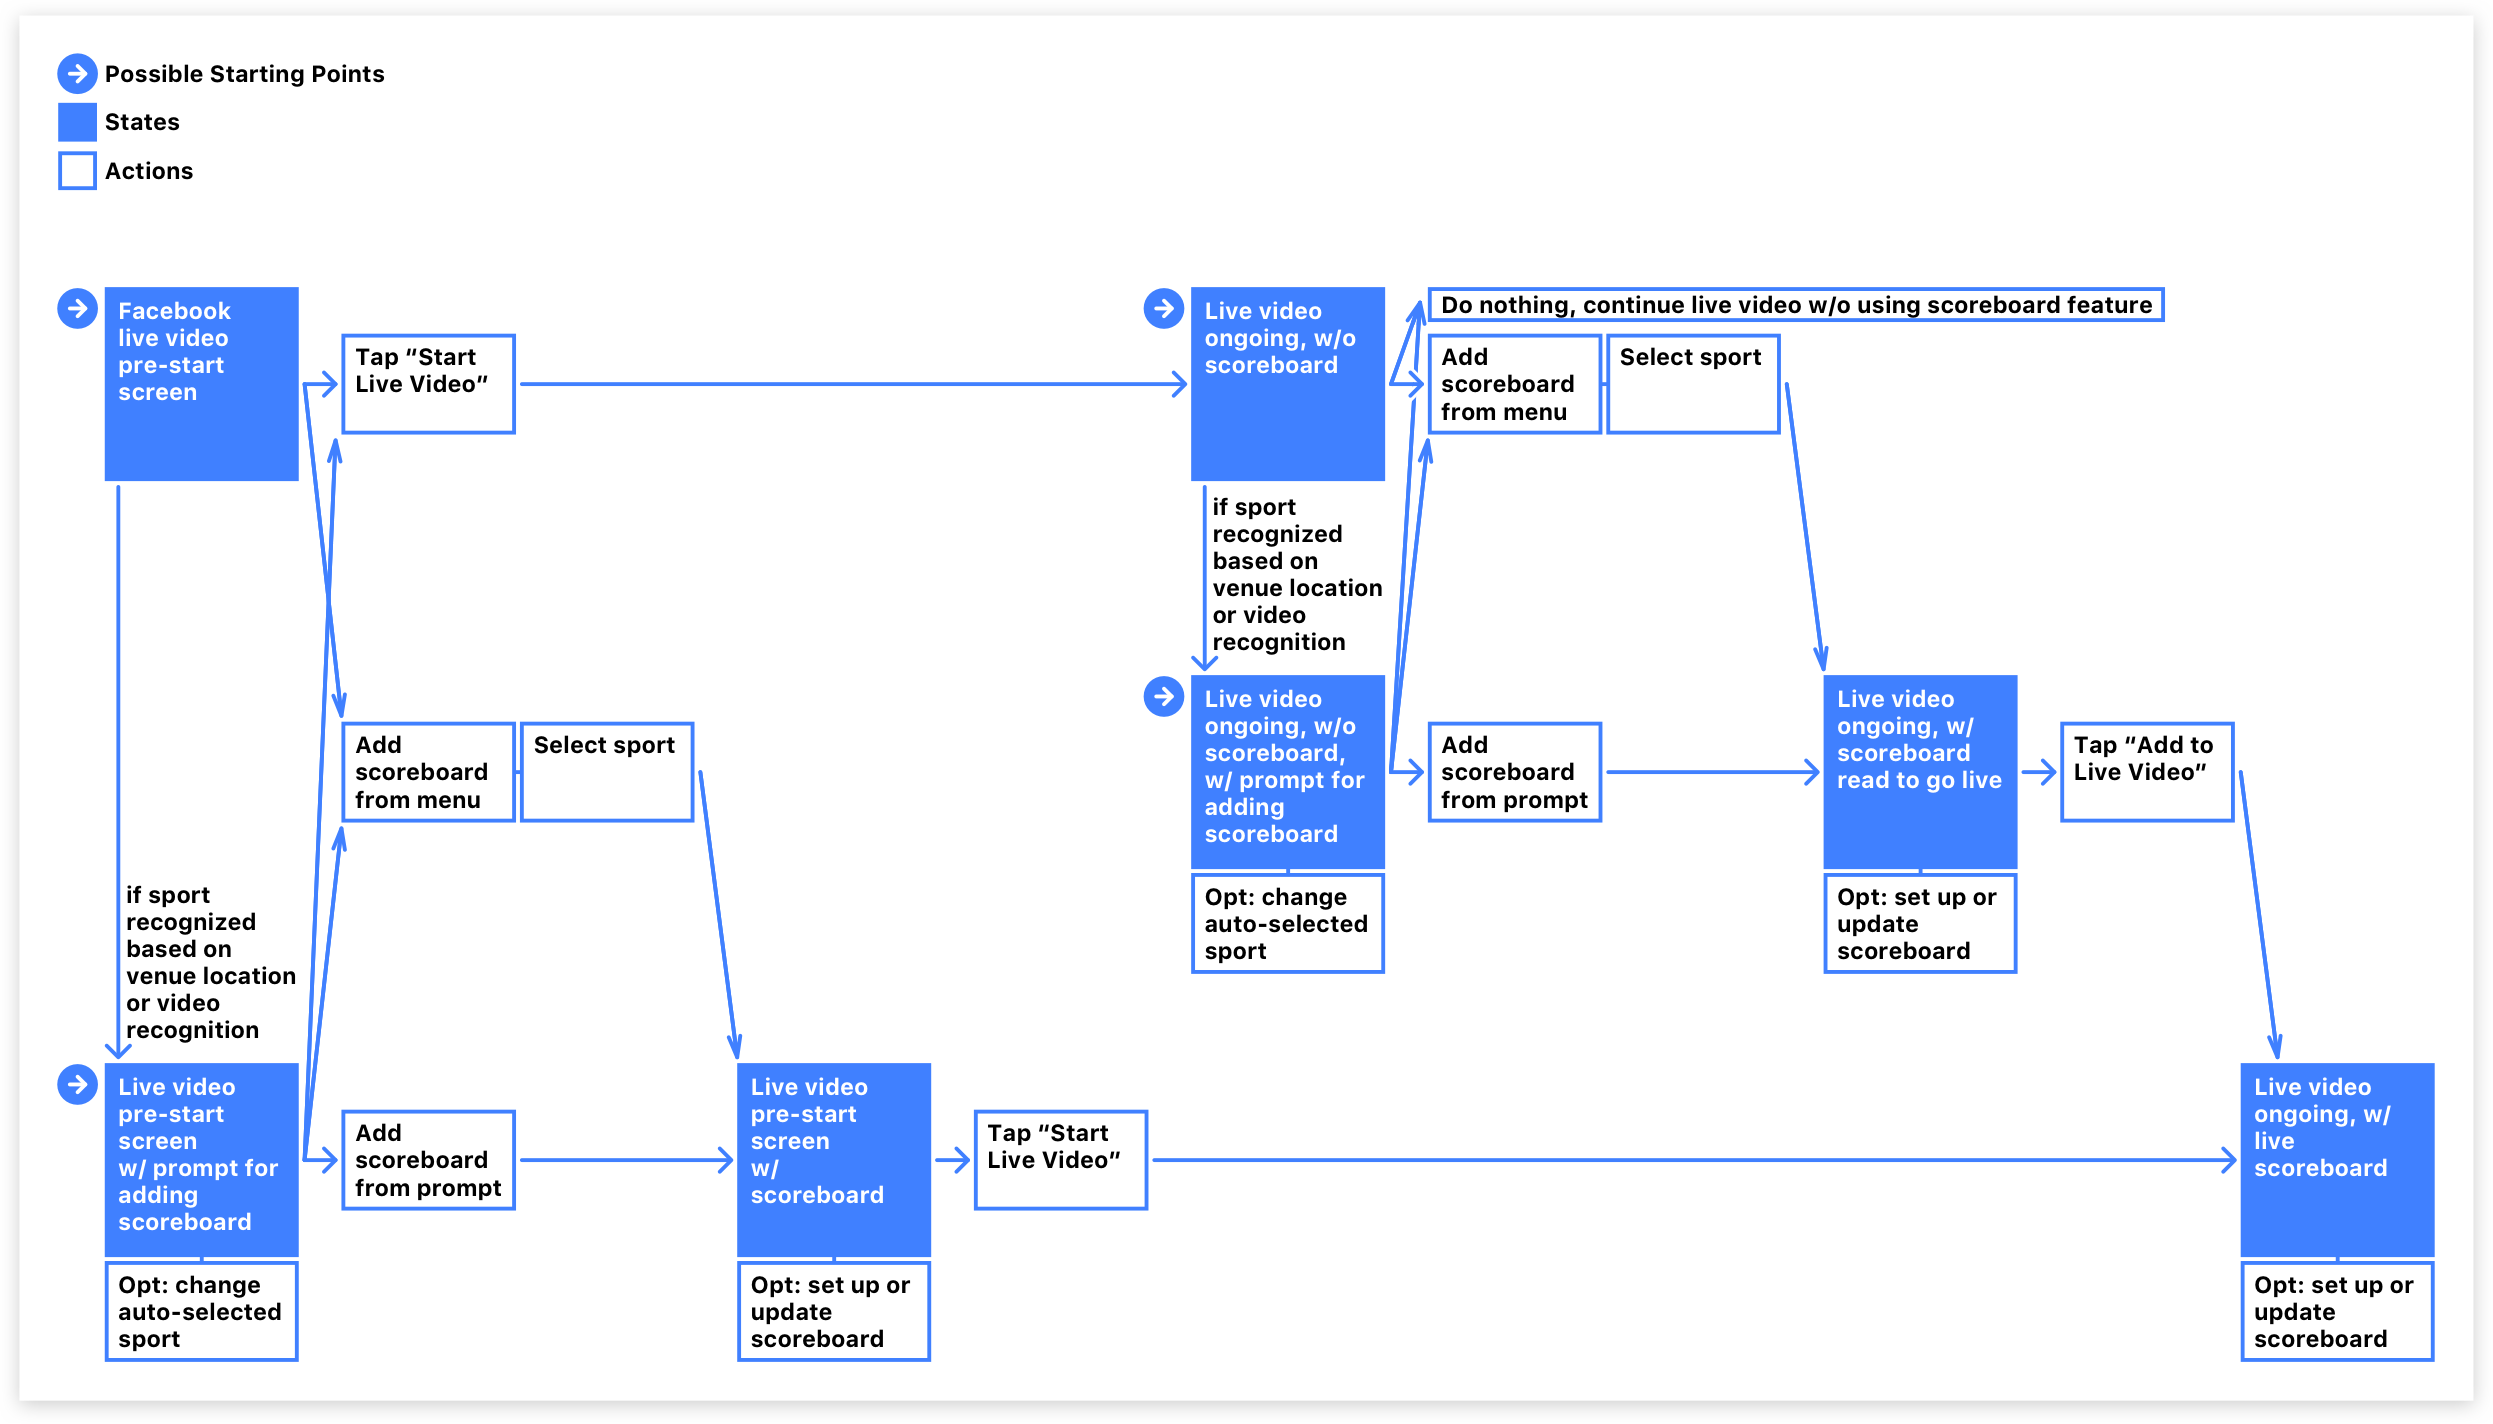 LVS - solution overview - user flows Copy 2@1.94x.png